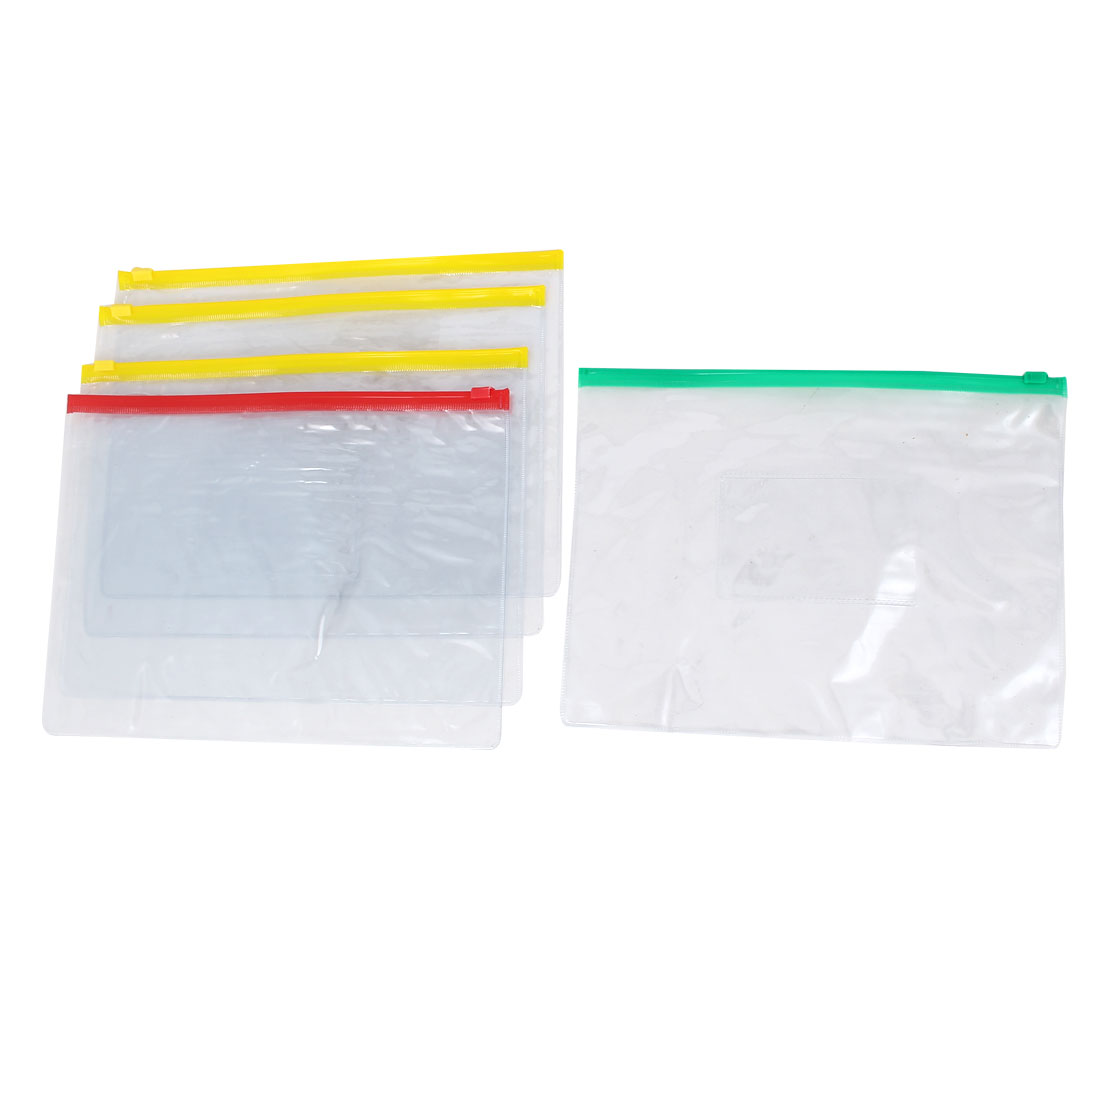 A5 Paper Size Slider Zipper Closure Folders Files Holder Bag 5PCS